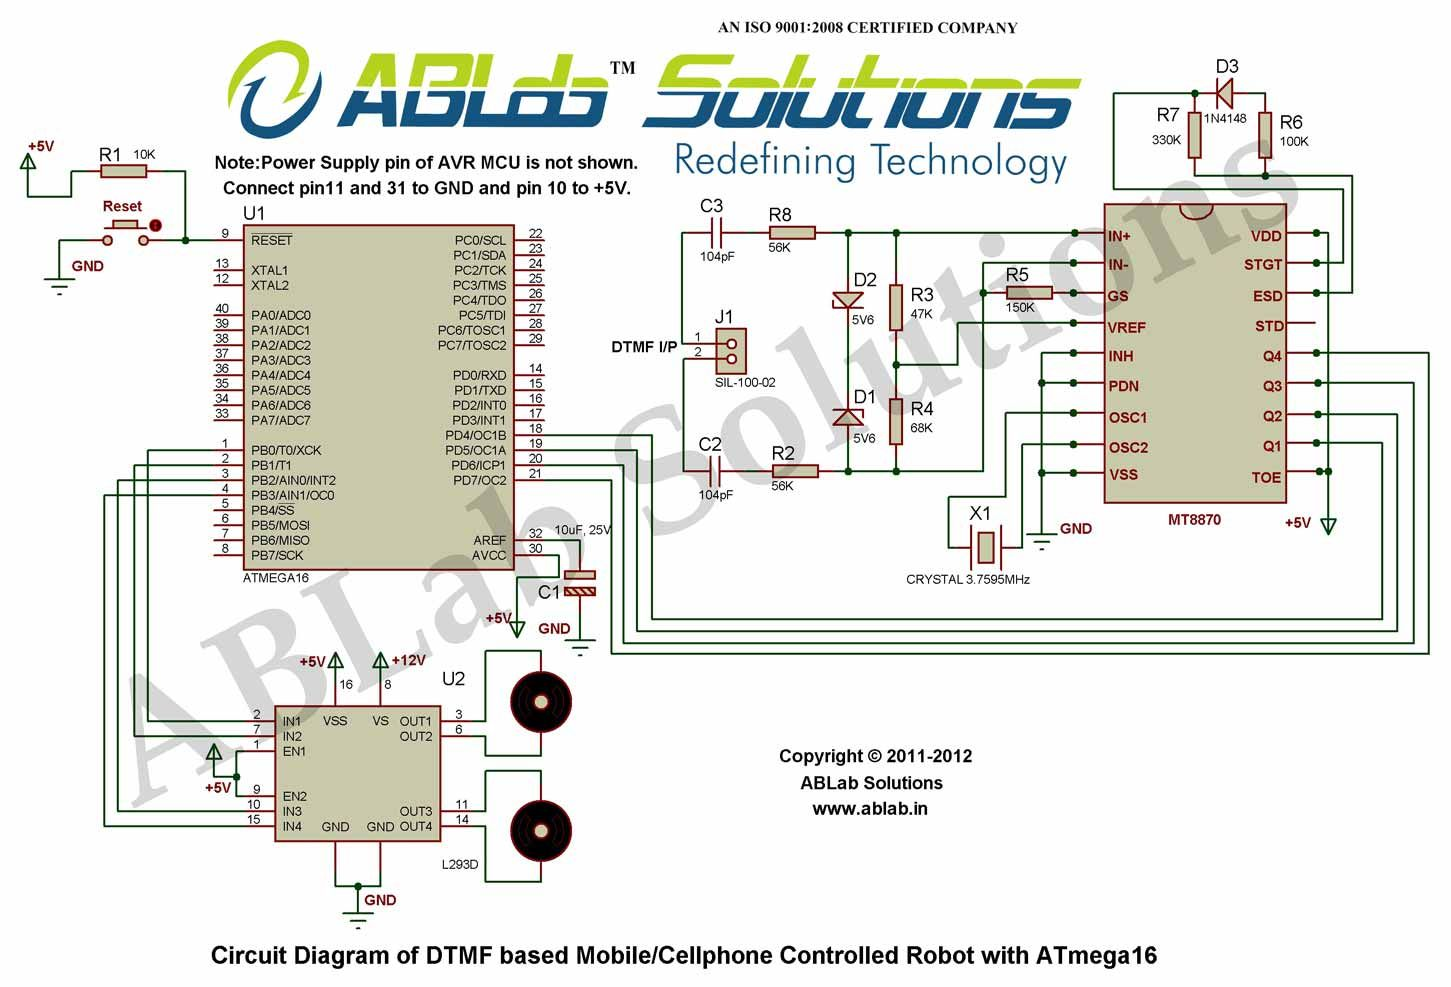 Dtmf Based Mobile Cellphone Controlled Robot With Avr Atmega16 Circuit Diagram Software Microcontroller